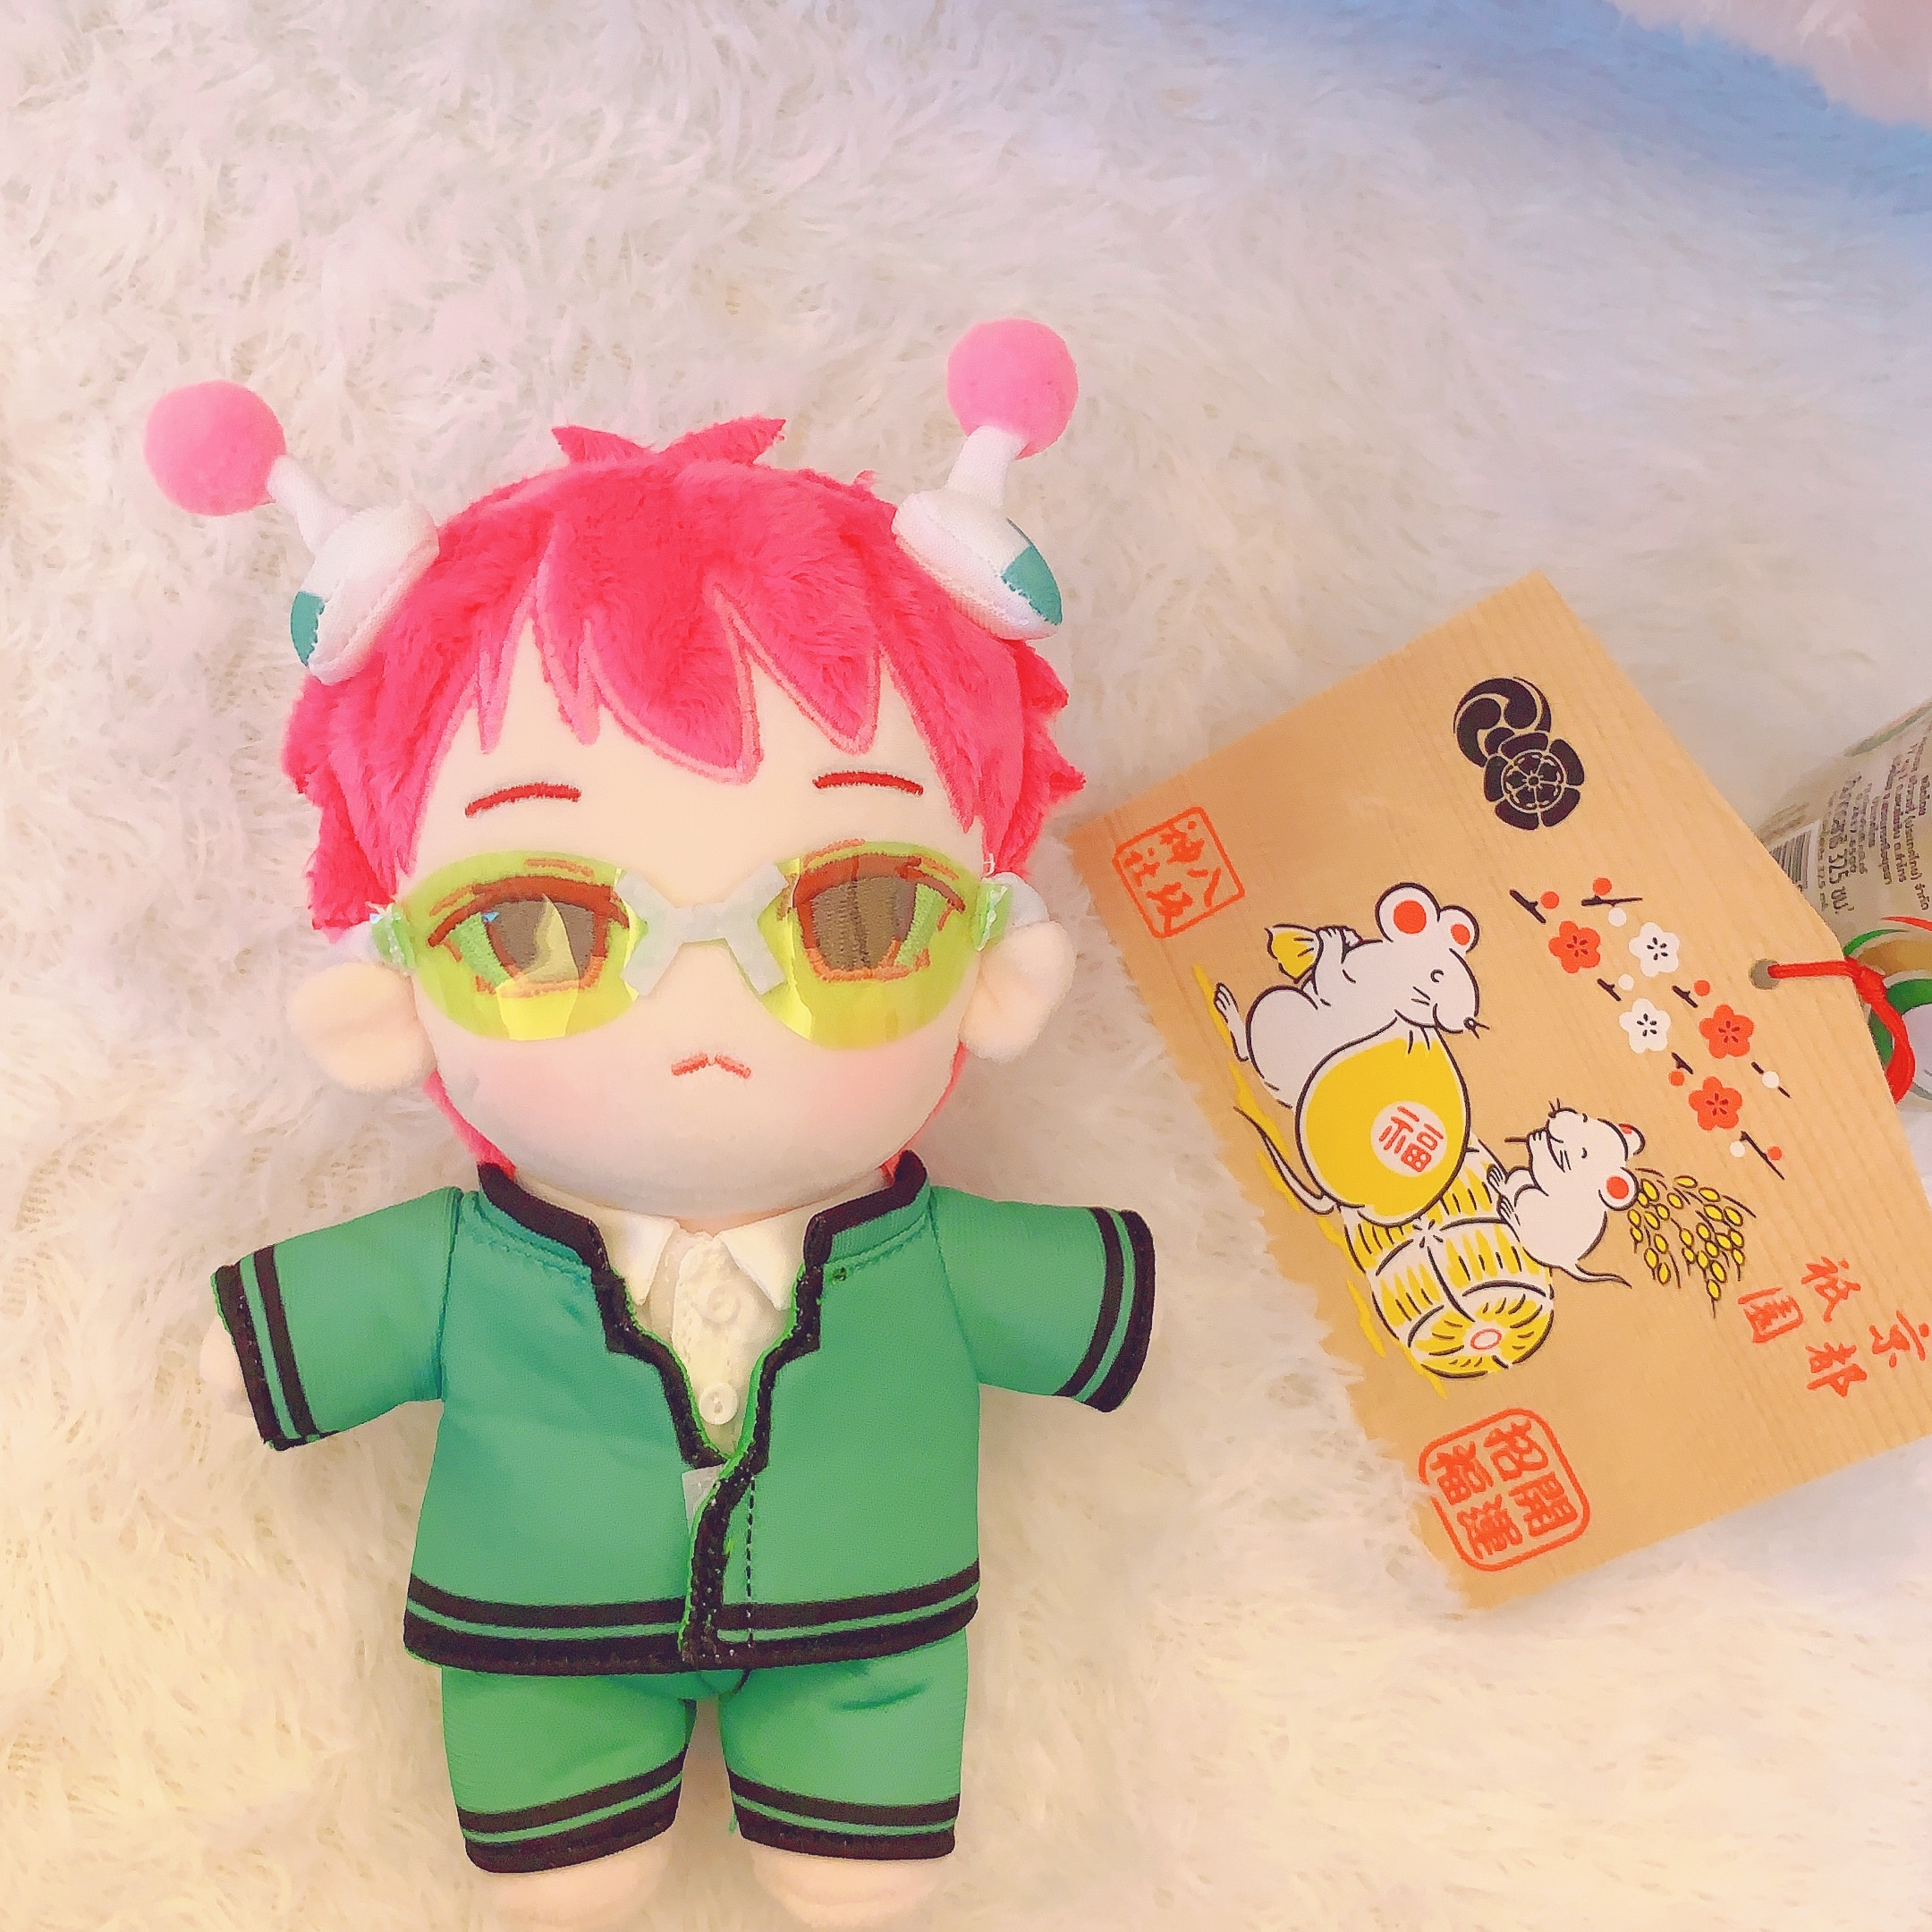 Anime The Disastrous Life of Saiki K. Saiki Kusuo Cosplay Cute Plush Stuffed Change Dolls Toy 20cm Doll Plushie Clothes Gift